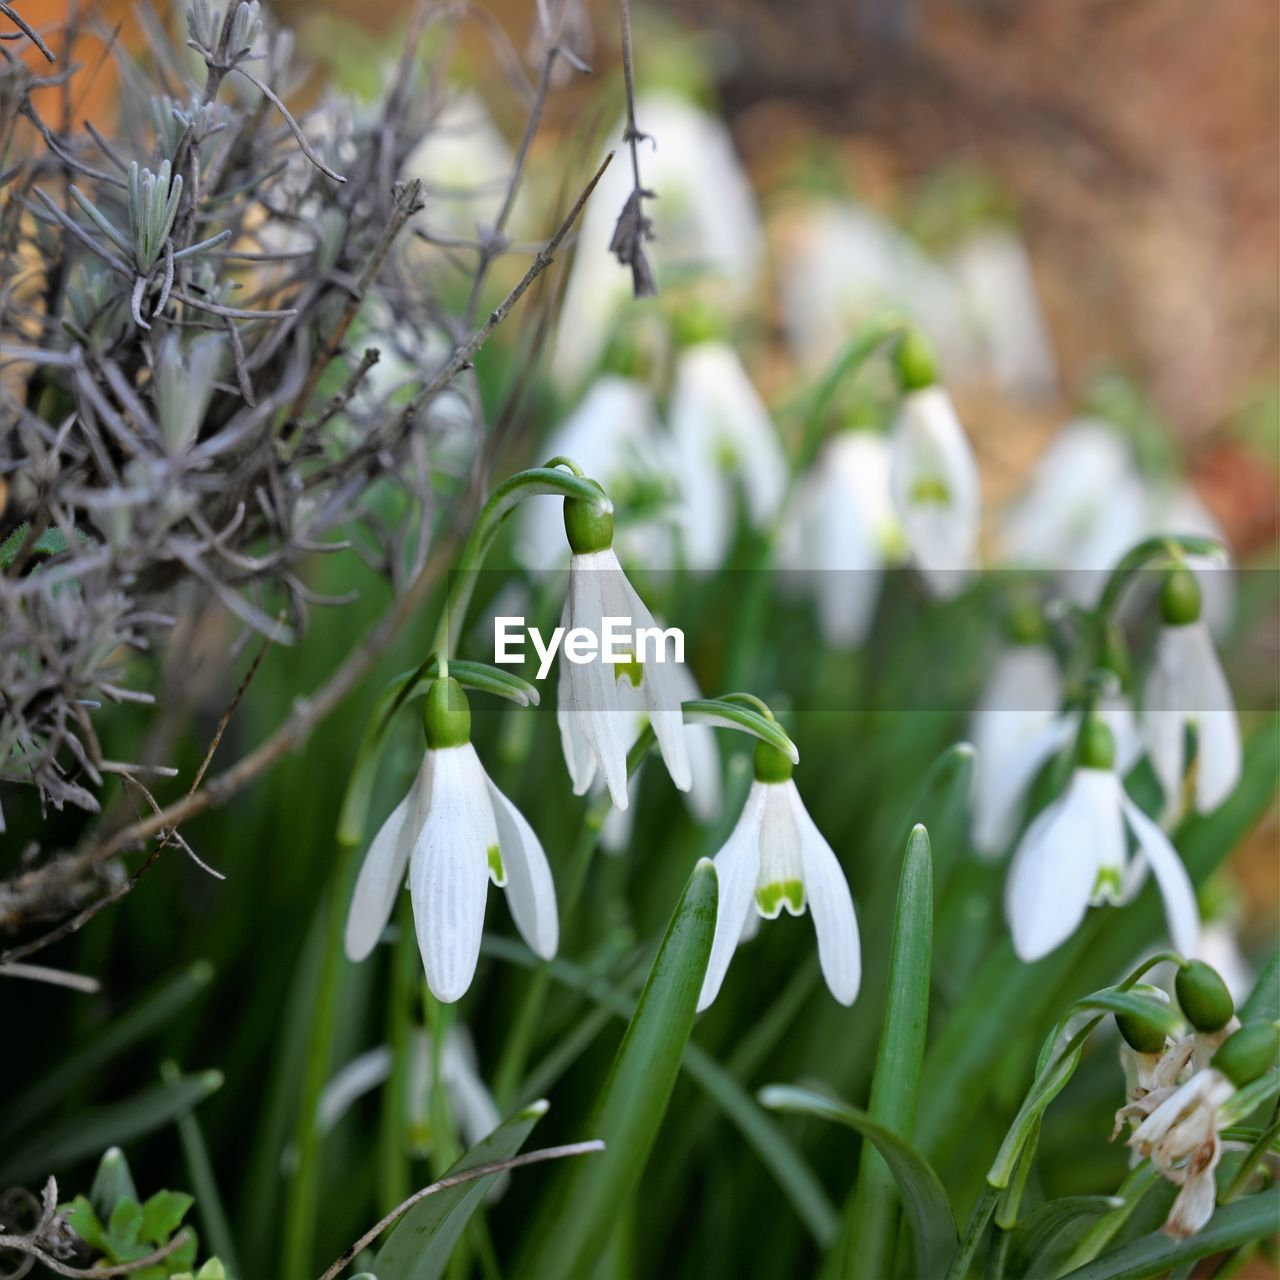 plant, growth, beauty in nature, flower, freshness, vulnerability, flowering plant, close-up, white color, snowdrop, fragility, focus on foreground, no people, nature, petal, day, inflorescence, flower head, green color, selective focus, outdoors